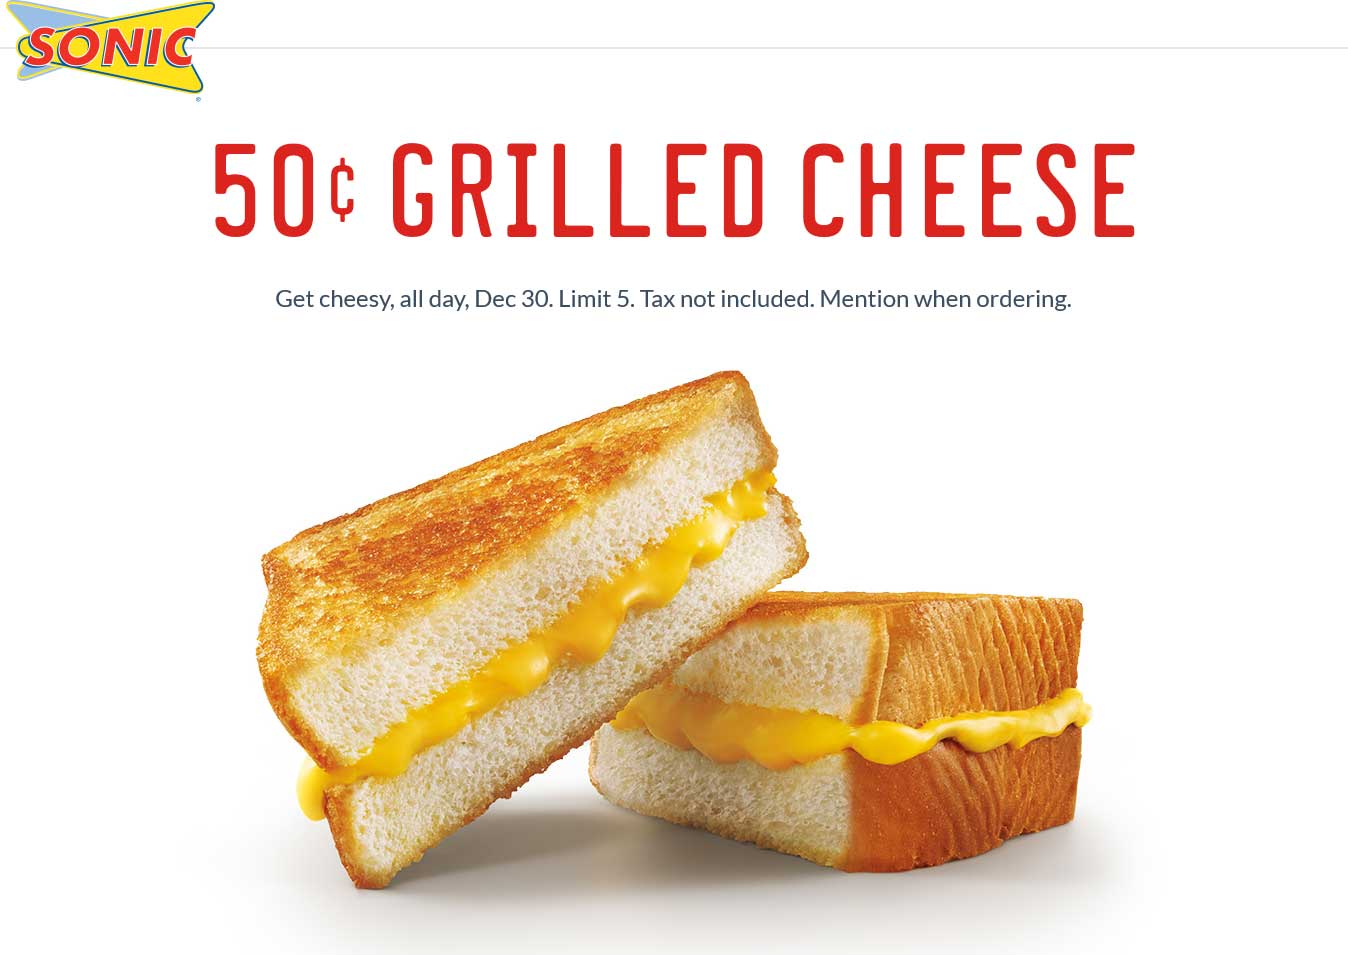 Sonic Drive-In Coupon December 2017 Grilled cheese for .50 cents Wednesday at Sonic Drive-In